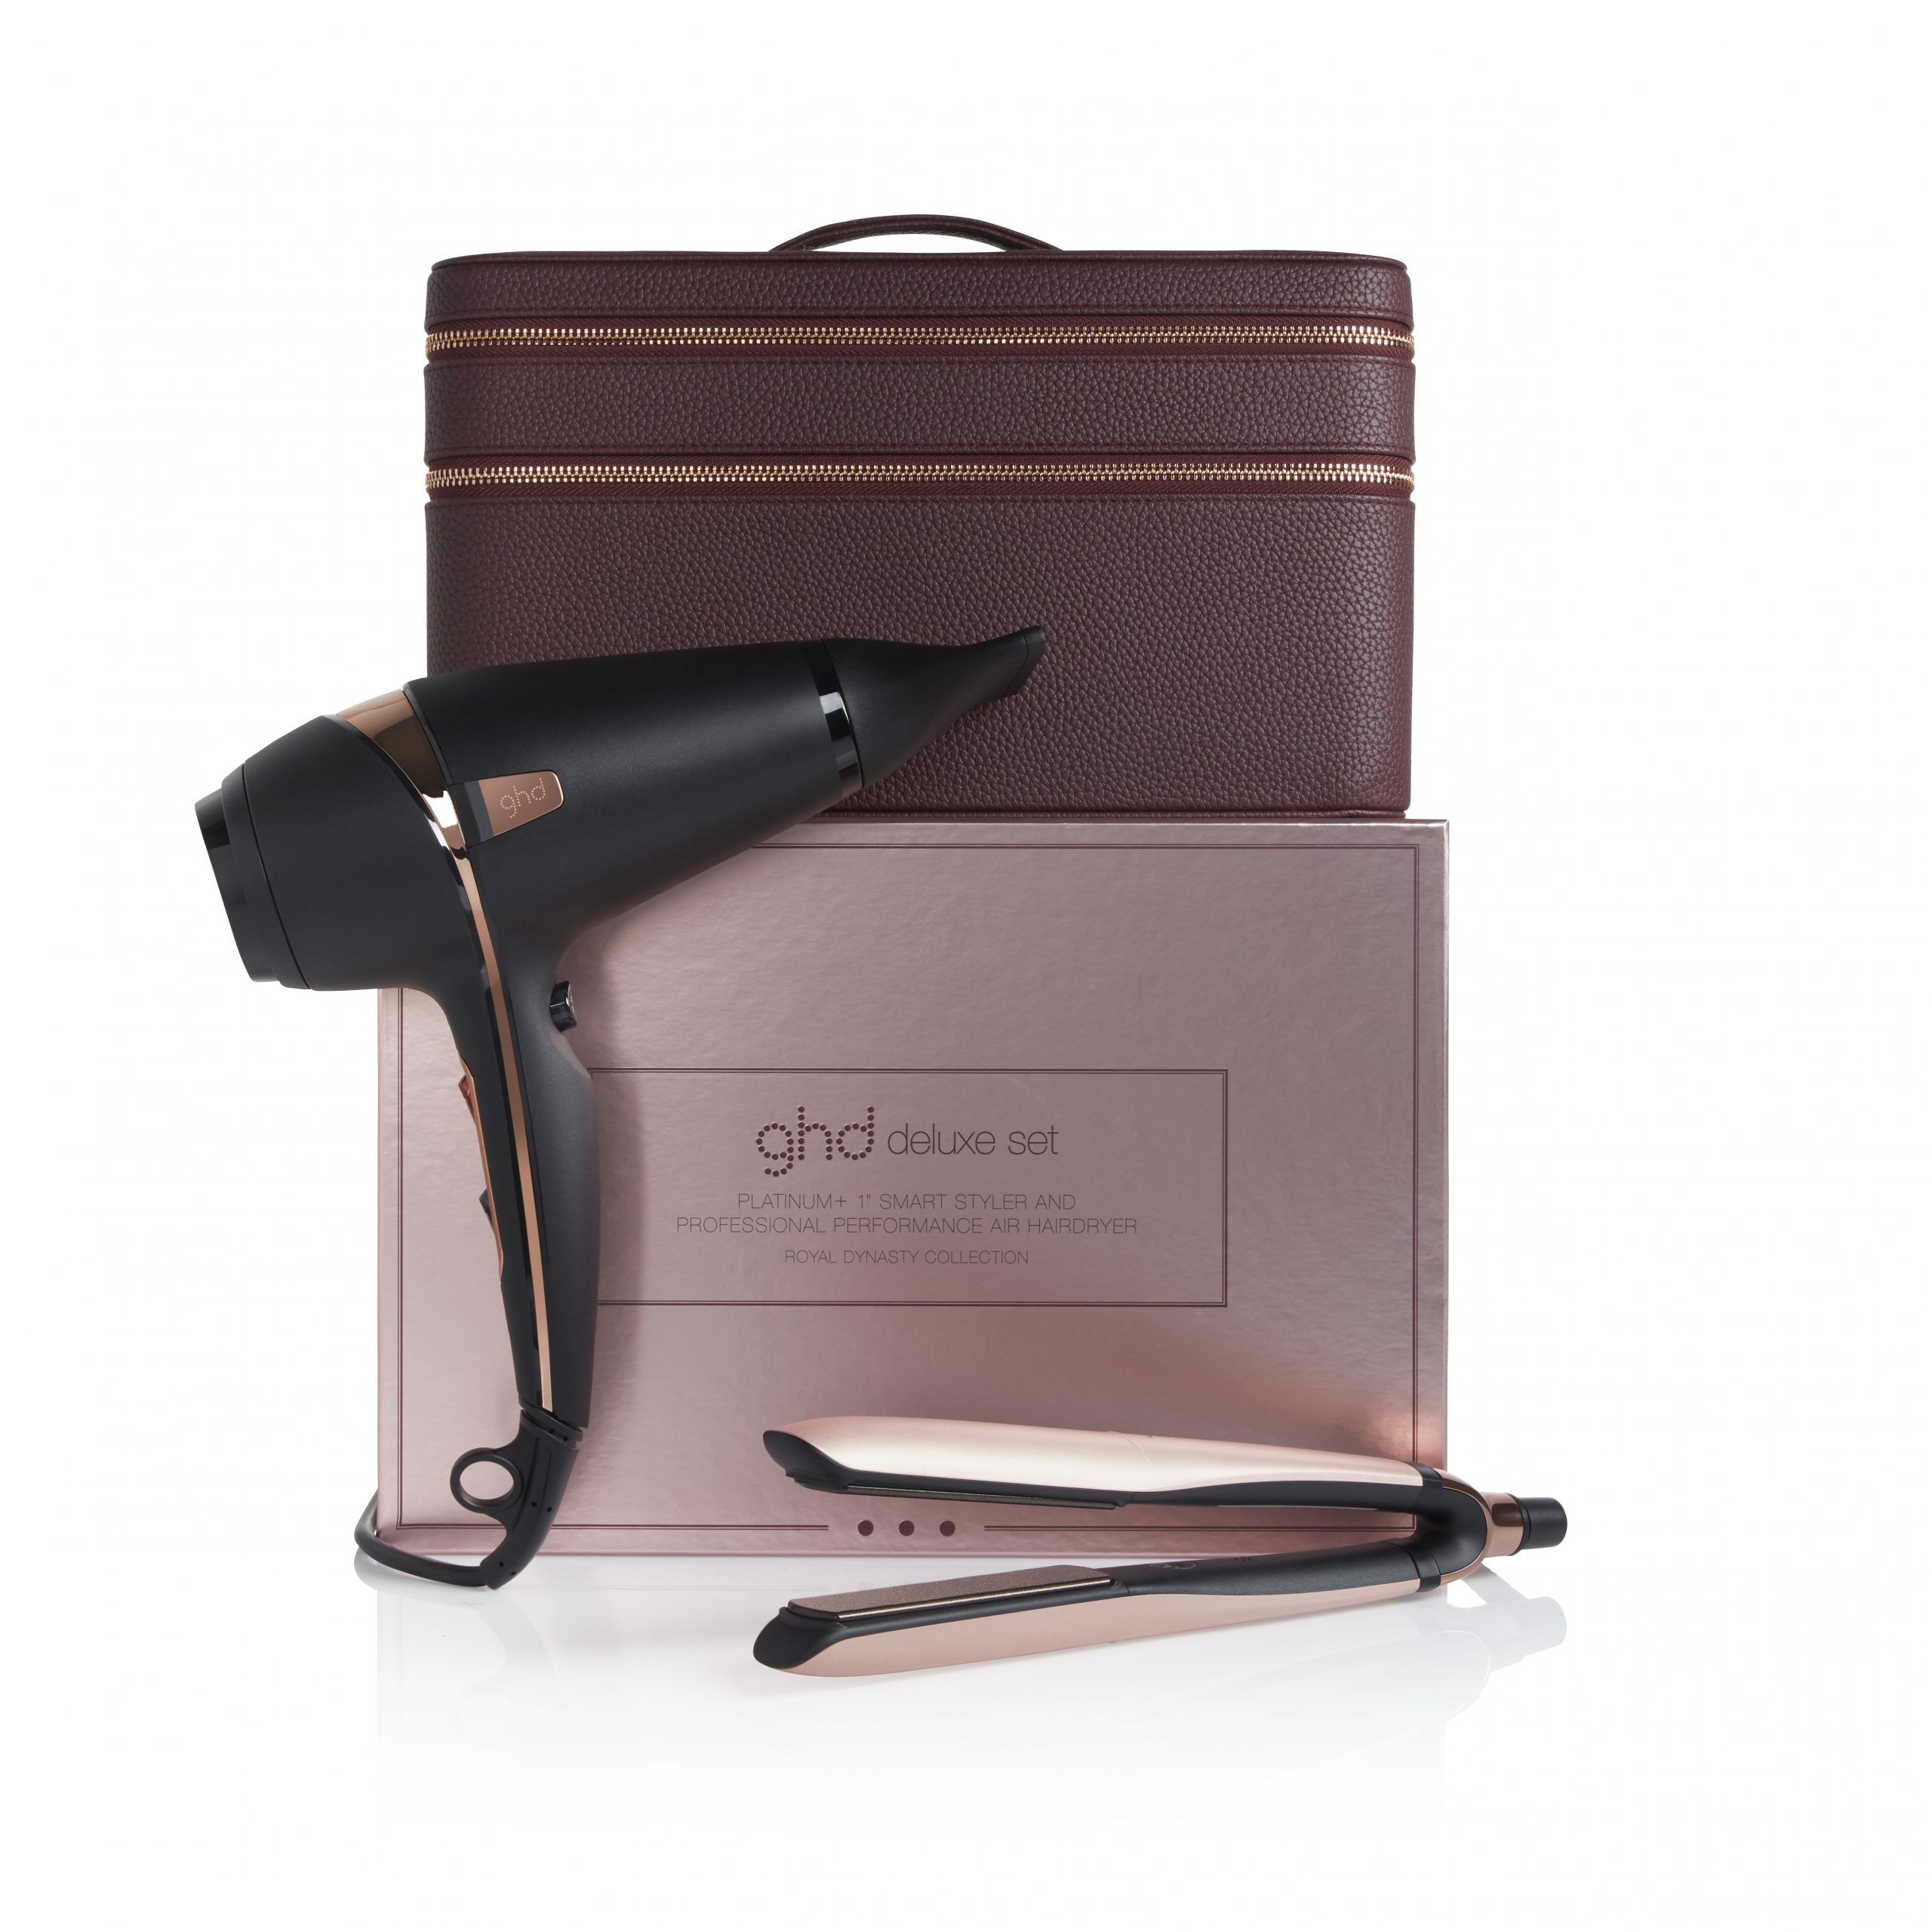 LIMITED EDITION ROSE GOLD Box Vanity case Air Plat US scaled